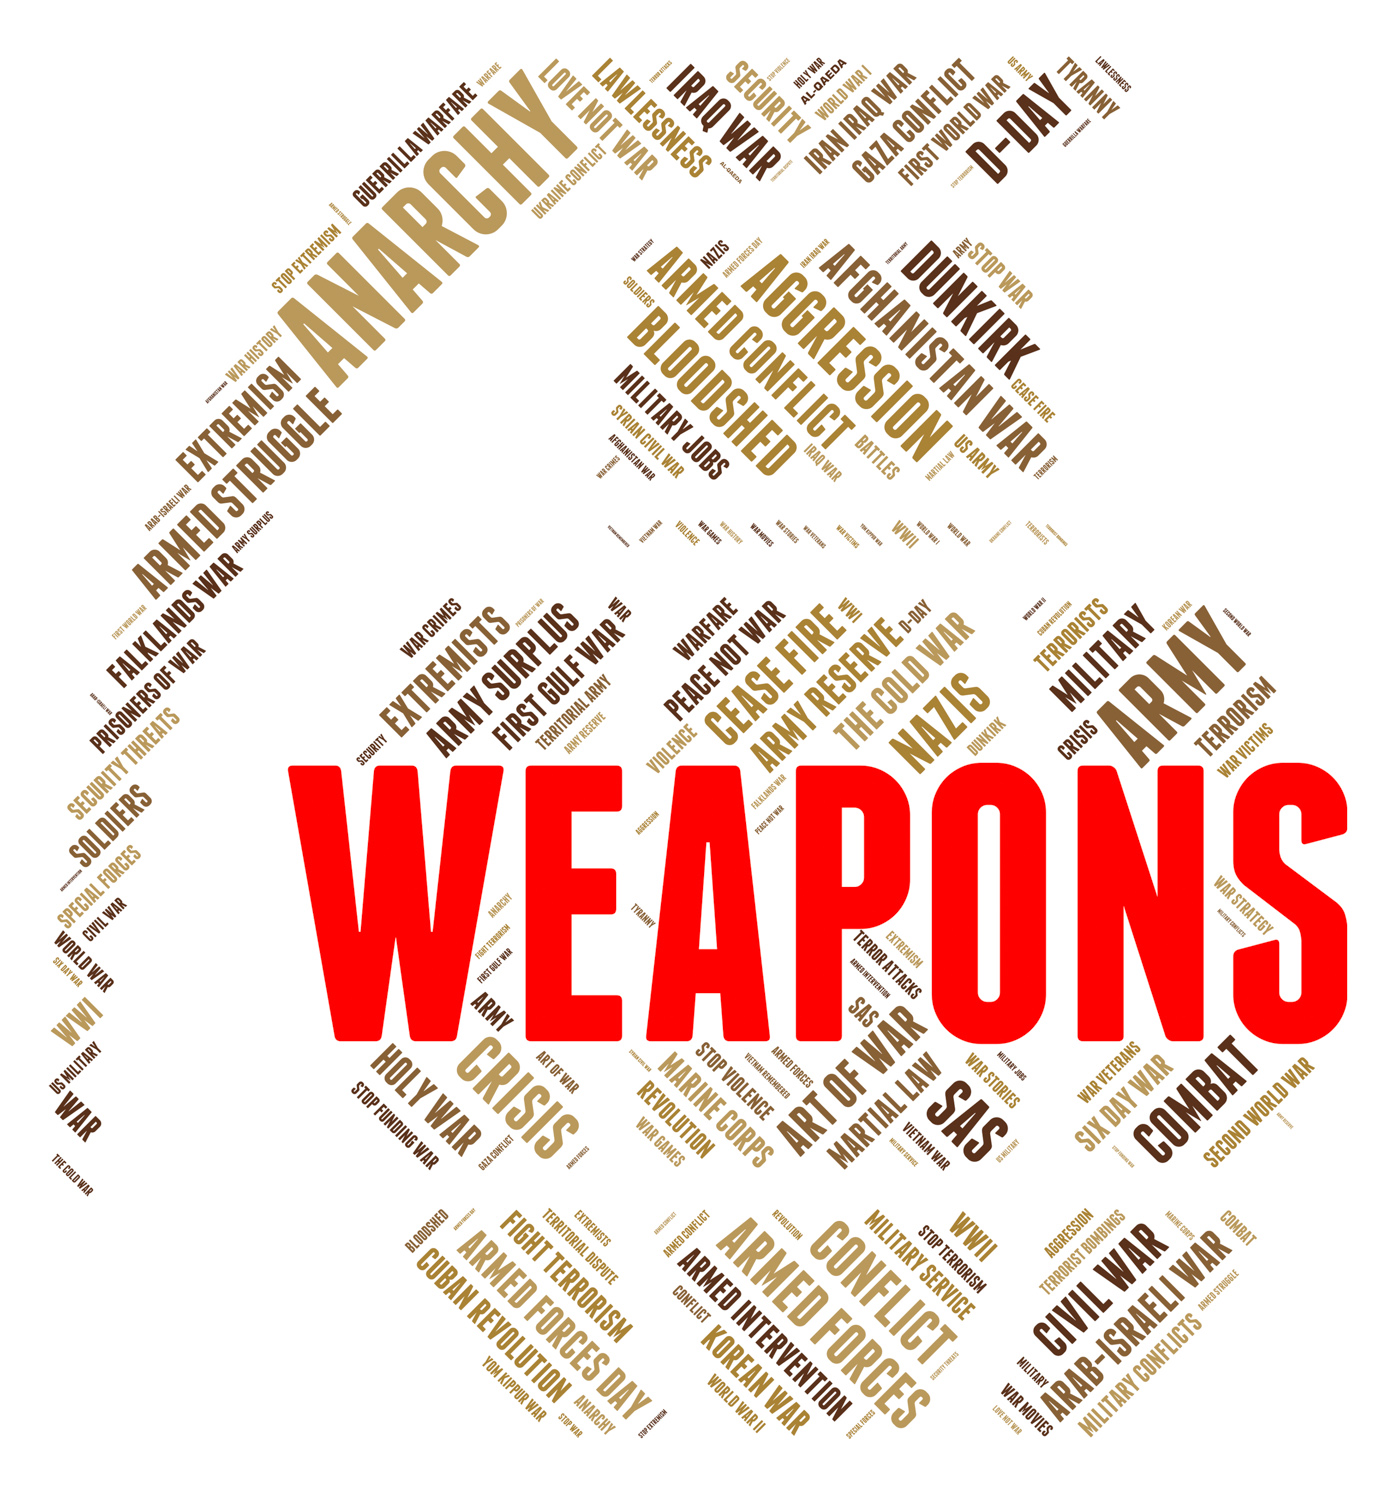 Weapons Word Represents Armory Armed And Arms, Armament, Armaments, Armed, Armory, HQ Photo